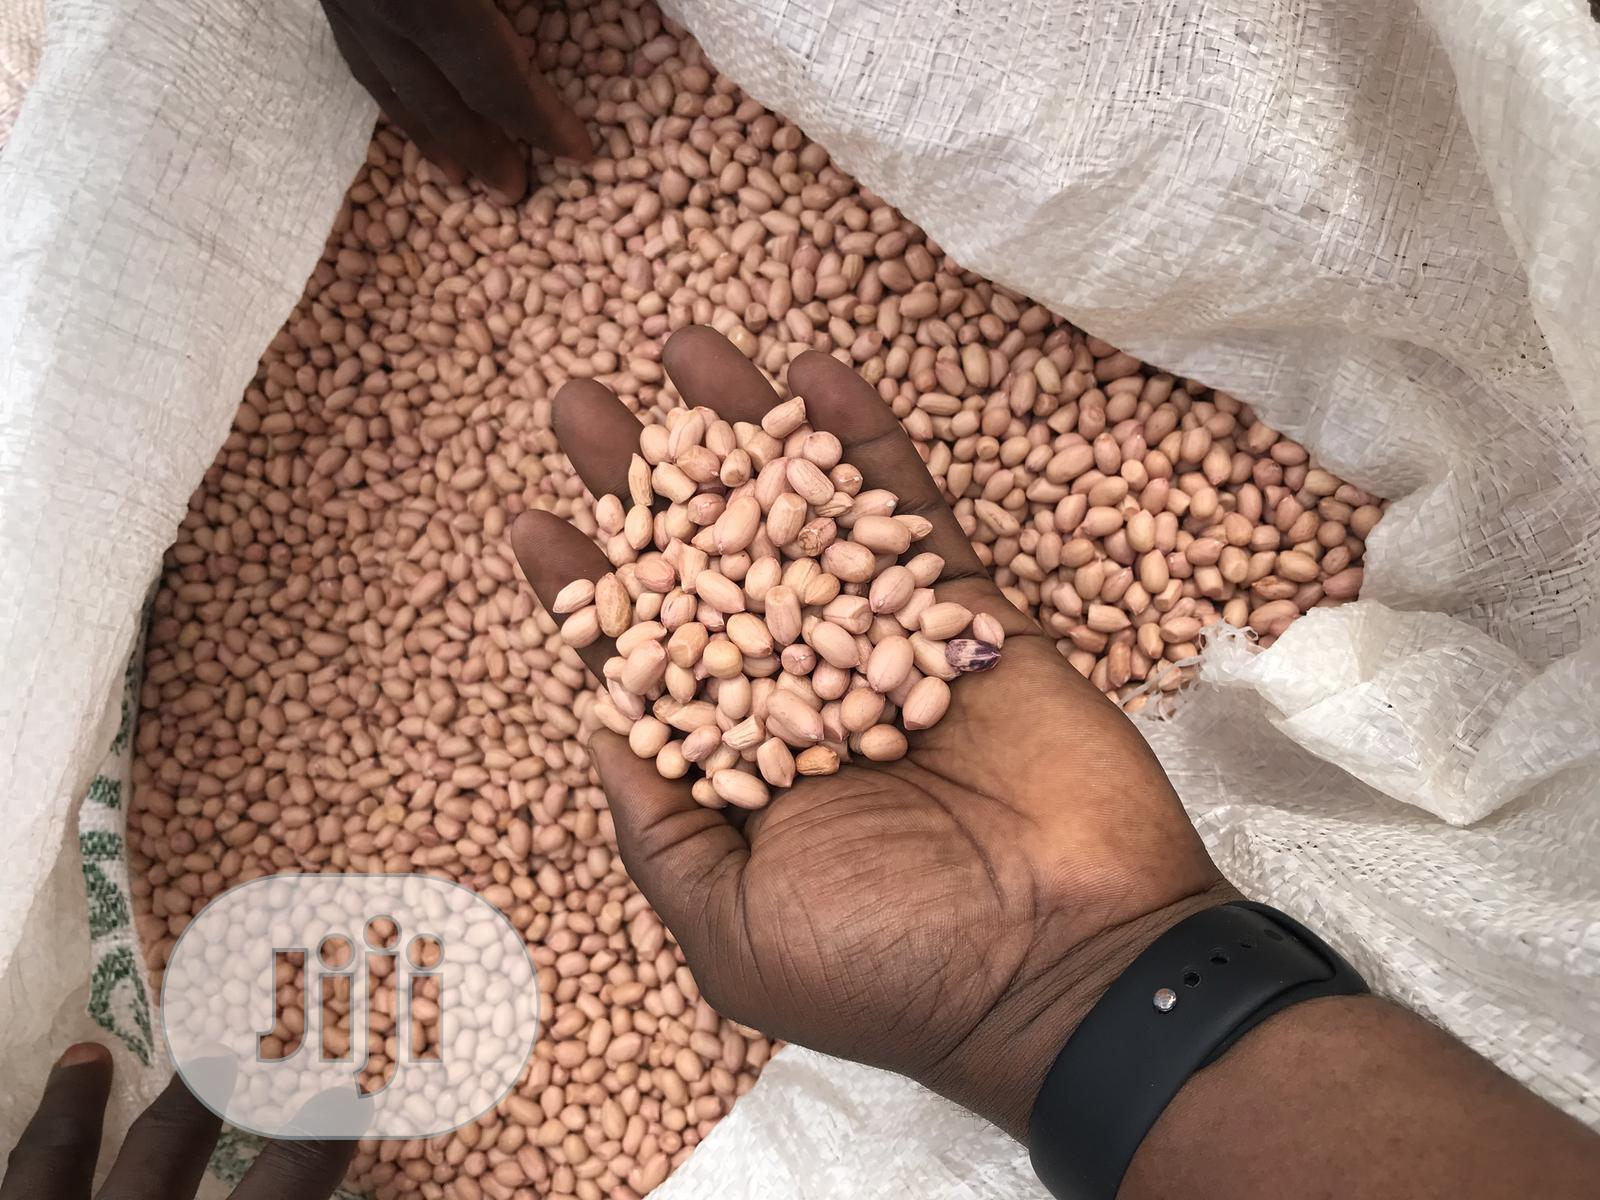 Raw Groundnut (Java Peanut) | Feeds, Supplements & Seeds for sale in Gboko, Benue State, Nigeria